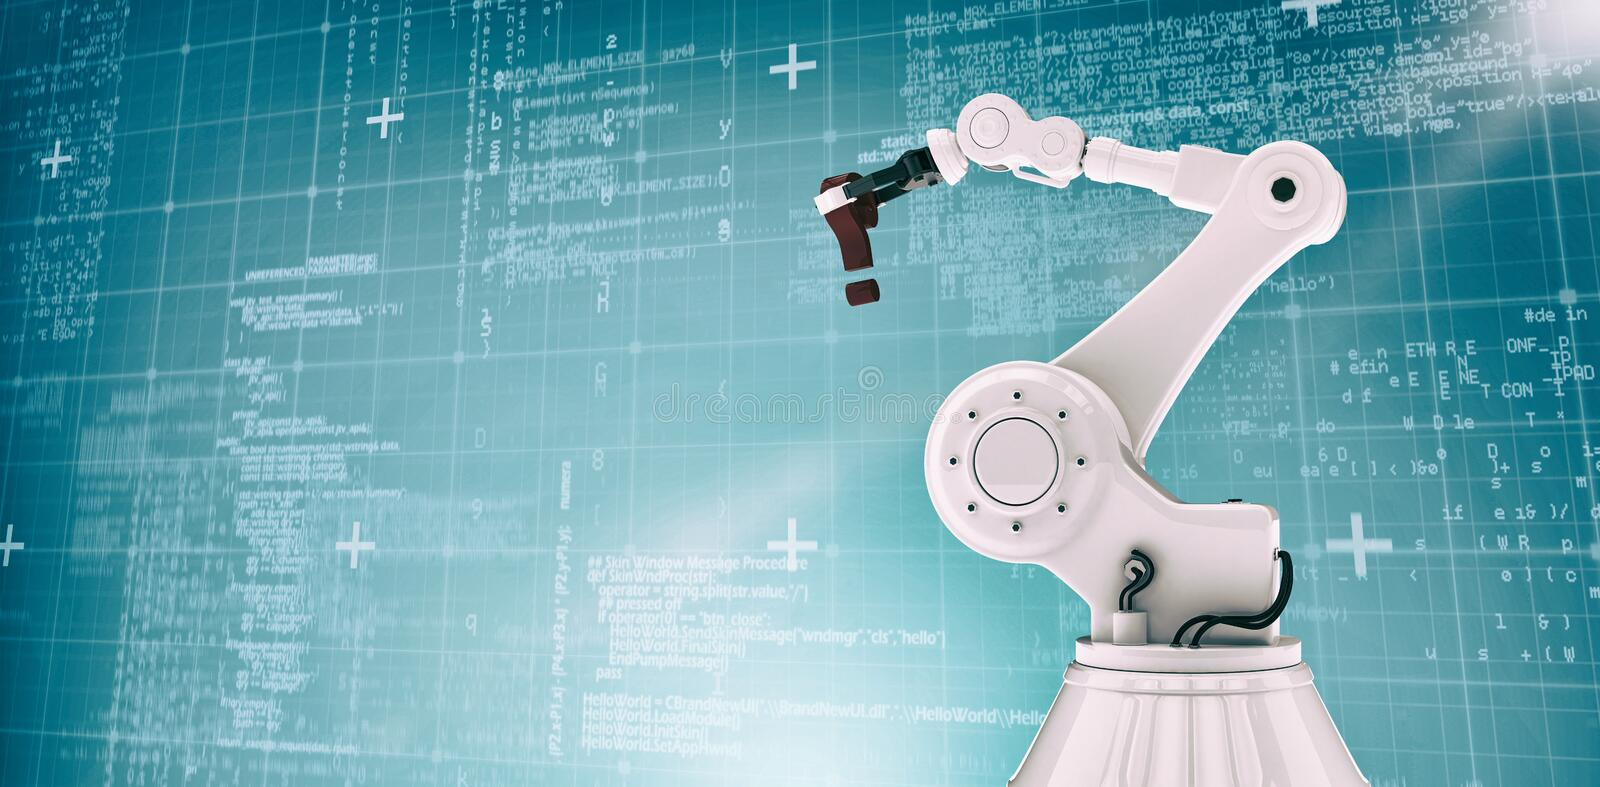 Composite image of computer graphic image of robotic arm holding question mark 3d. Computer graphic image of robotic arm holding question mark against blue royalty free stock photo